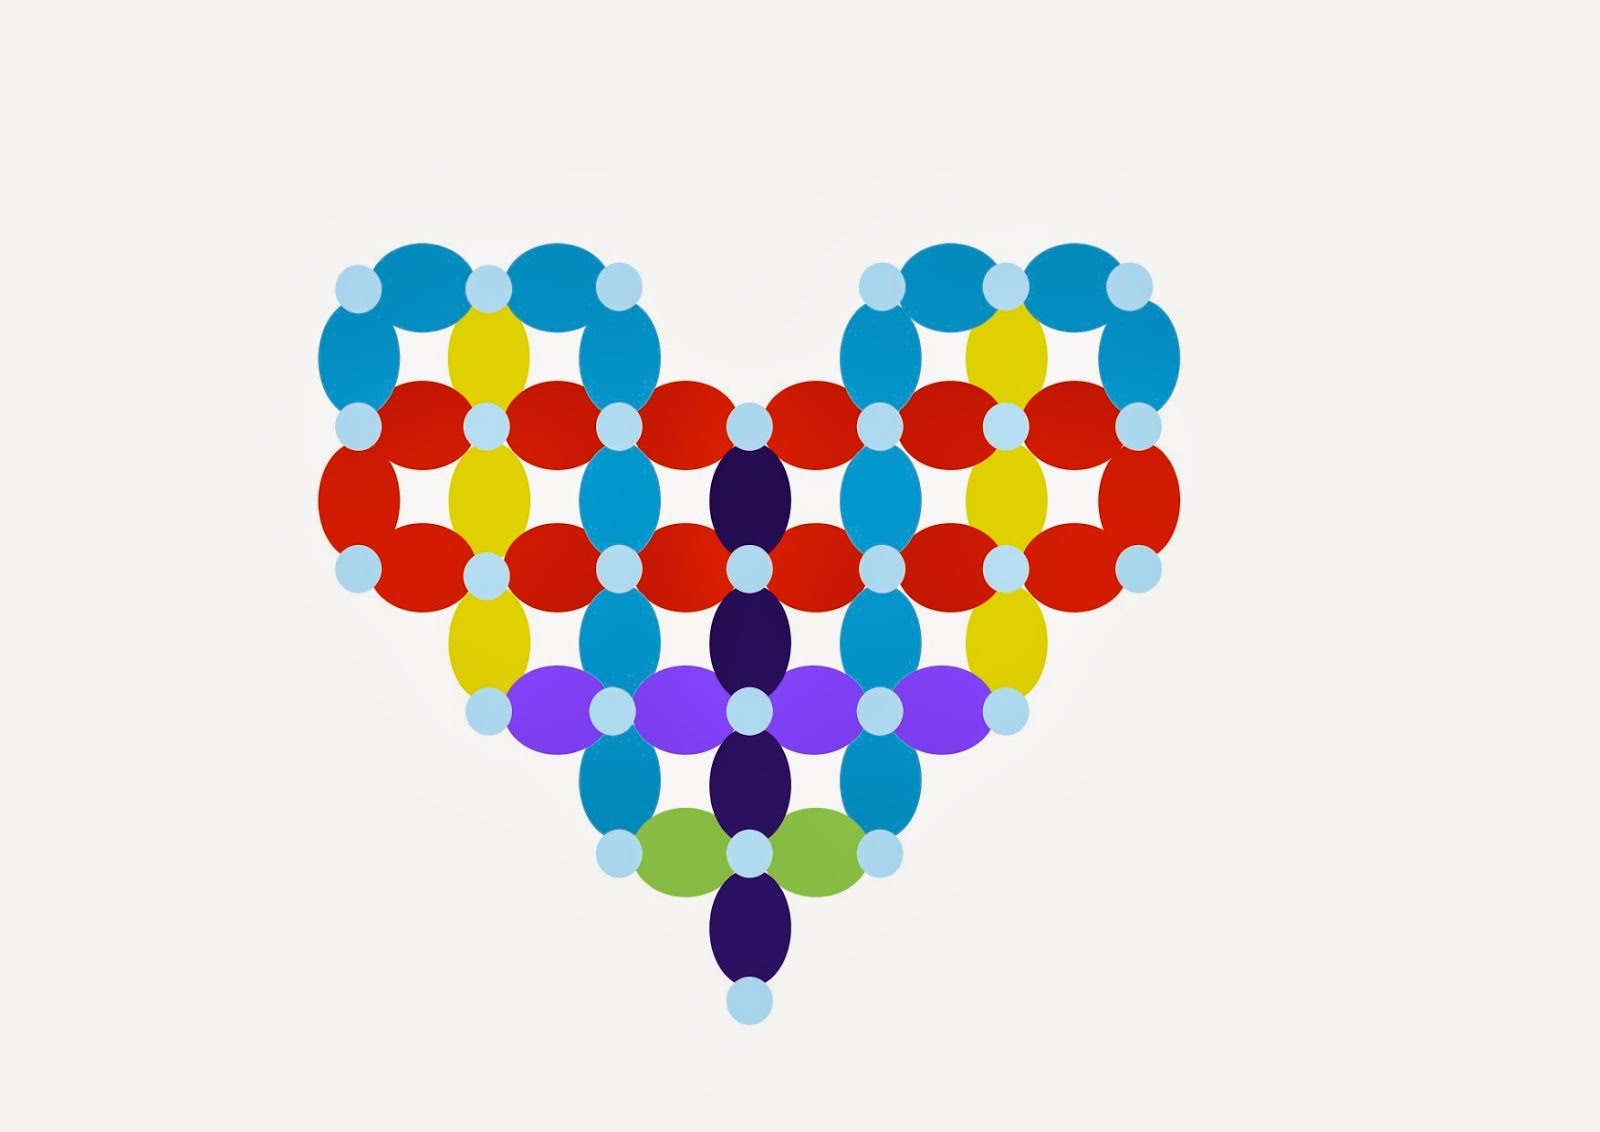 The Very Best Balloon Blog How To Make A Simple Quick Link Heart For Uninitiated Users